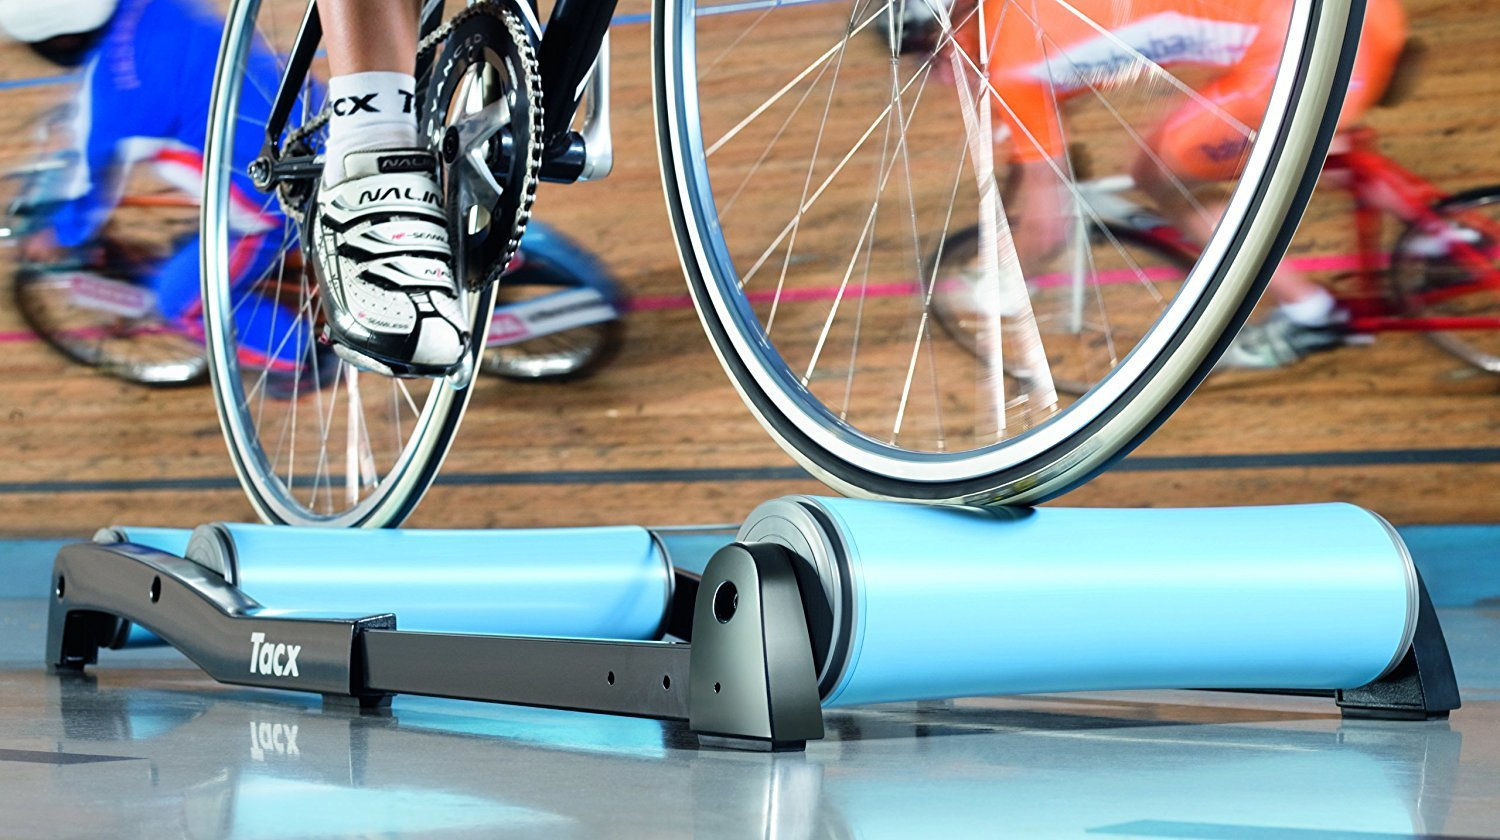 "tacx antares 1000 ""width ="" 1500 ""height ="" 840 ""srcset ="" https://www.sport.es/labolsadelcorredor/wp-content/uploads/2017/04/81hBnyGuUbL._SL1500_.jpg 1500w, https: / /www.sport.es/labolsadelcorredor/wp-content/uploads/2017/04/81hBnyGuUbL._SL1500_-768x430.jpg 768w, https://www.sport.es/labolsadelcorredor/wp-content/uploads/2017/04/ 81hBnyGuUbL._SL1500_-750x420.jpg 750w, https://www.sport.es/labolsadelcorredor/wp-content/uploads/2017/04/81hBnyGuUbL._SL1500_-640x358.jpg 640w, https://www.sport.es/ labolsadelcorredor / wp-content / uploads / 2017/04 / 81hBnyGuUbL._SL1500_-681x381.jpg 681w ""sizes ="" (max-width: 1500px) 100vw, 1500px"